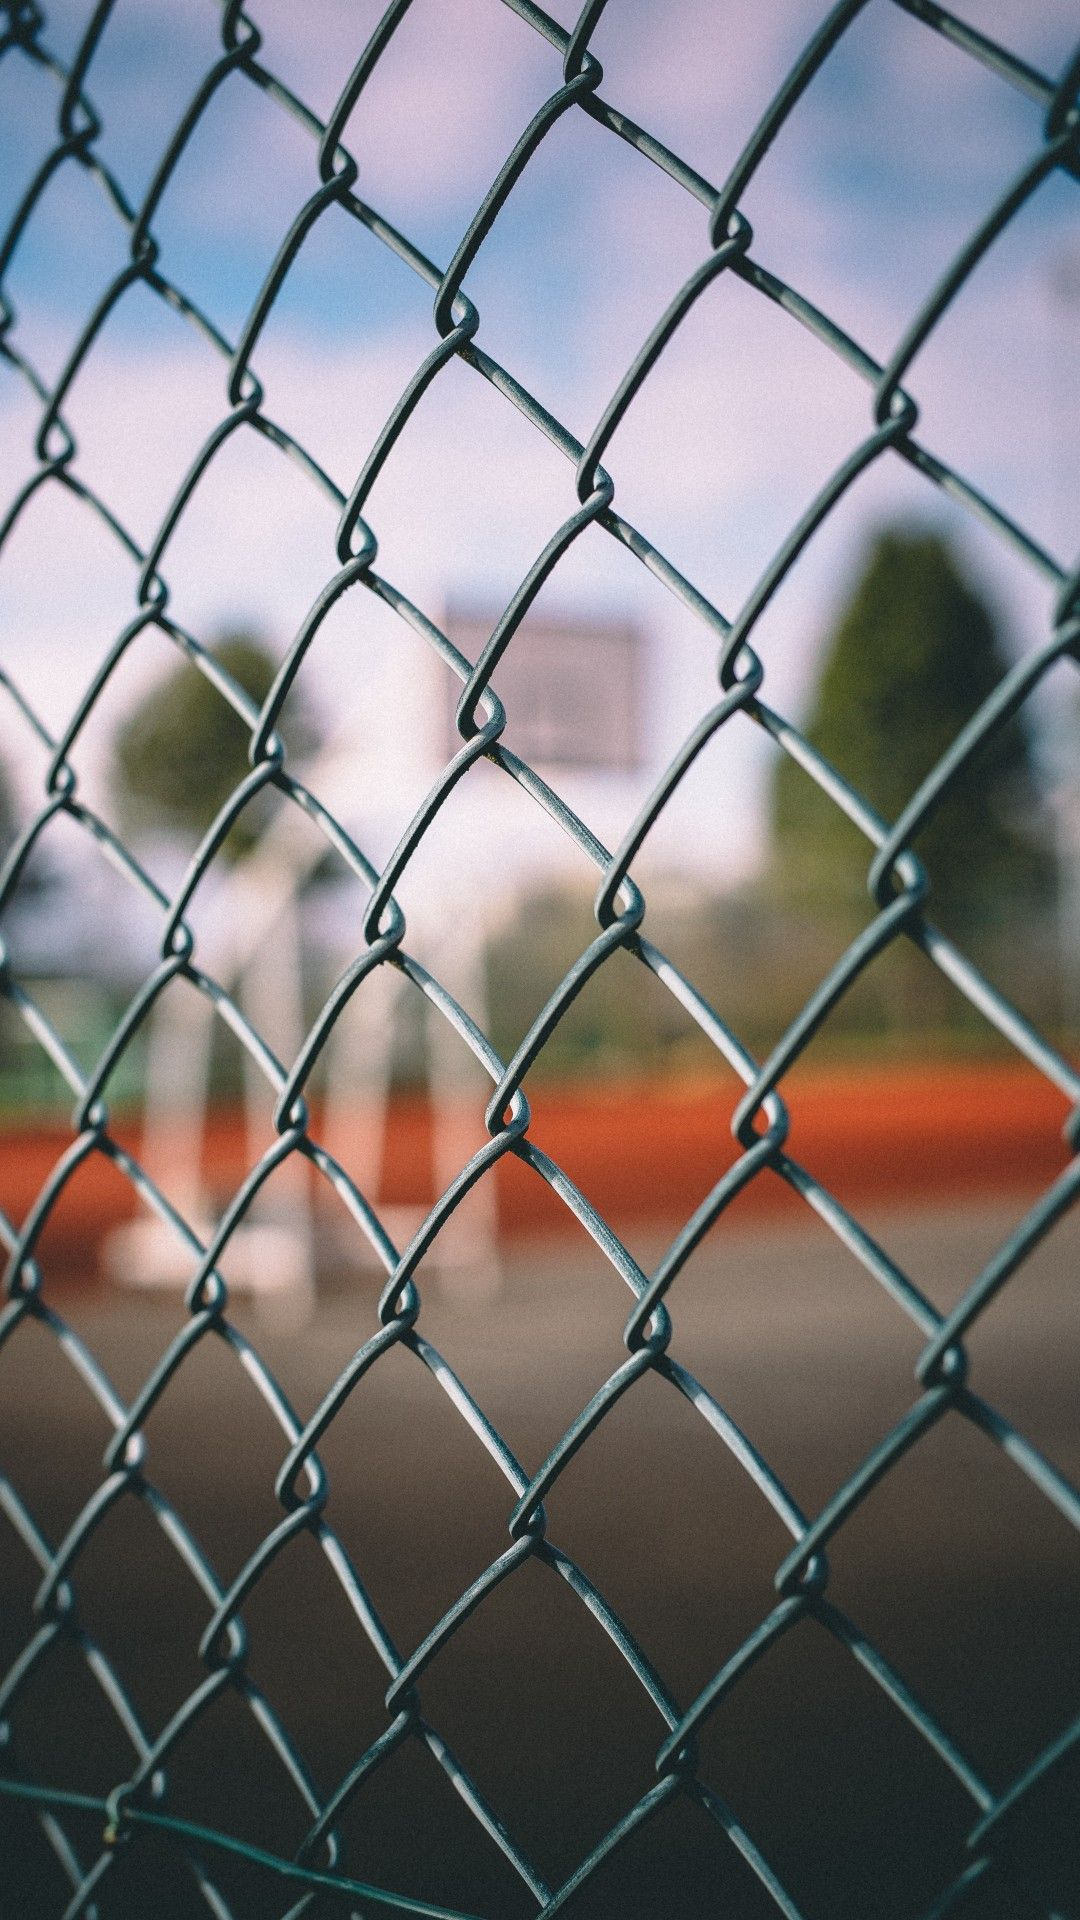 chain link fence wallpaper. Wallpaper Backgrounds · ☆ Fences Chain Link Fence L